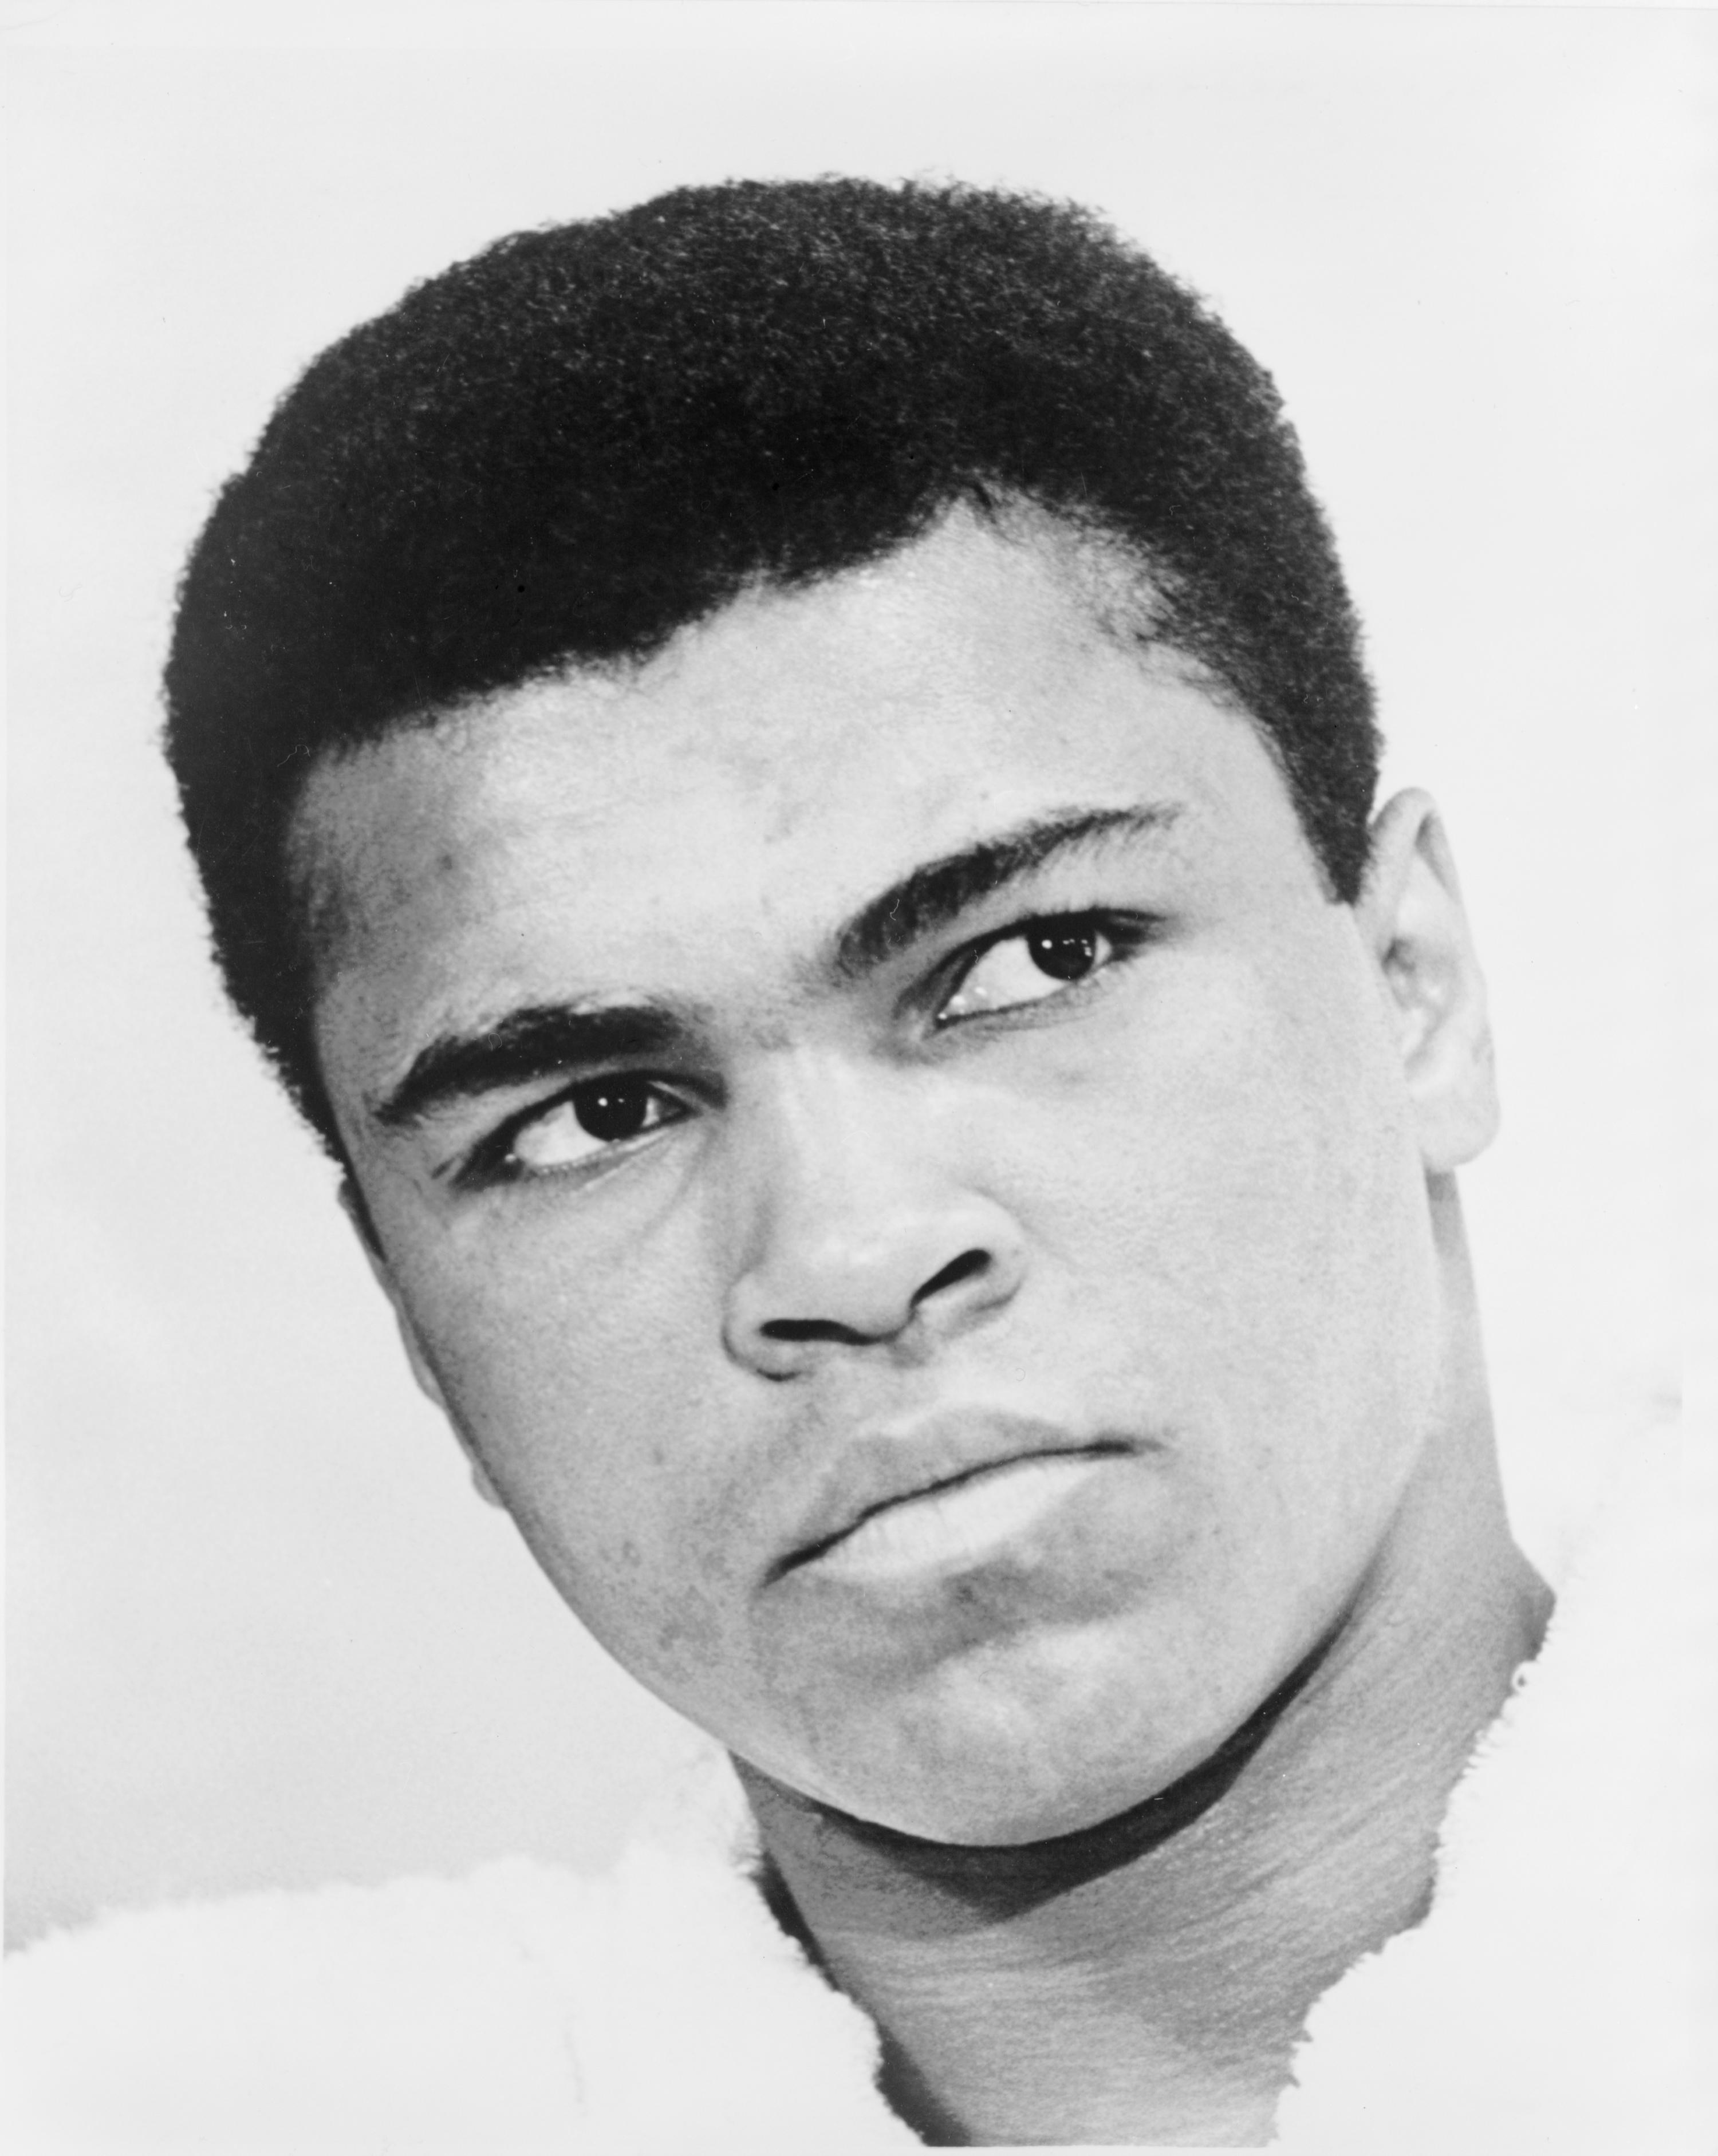 cassius clay muhammad ali At 50, muhammad ali is a much-admired figure, just as he was in his formative years as a fun-loving but purposeful youth in louisville.